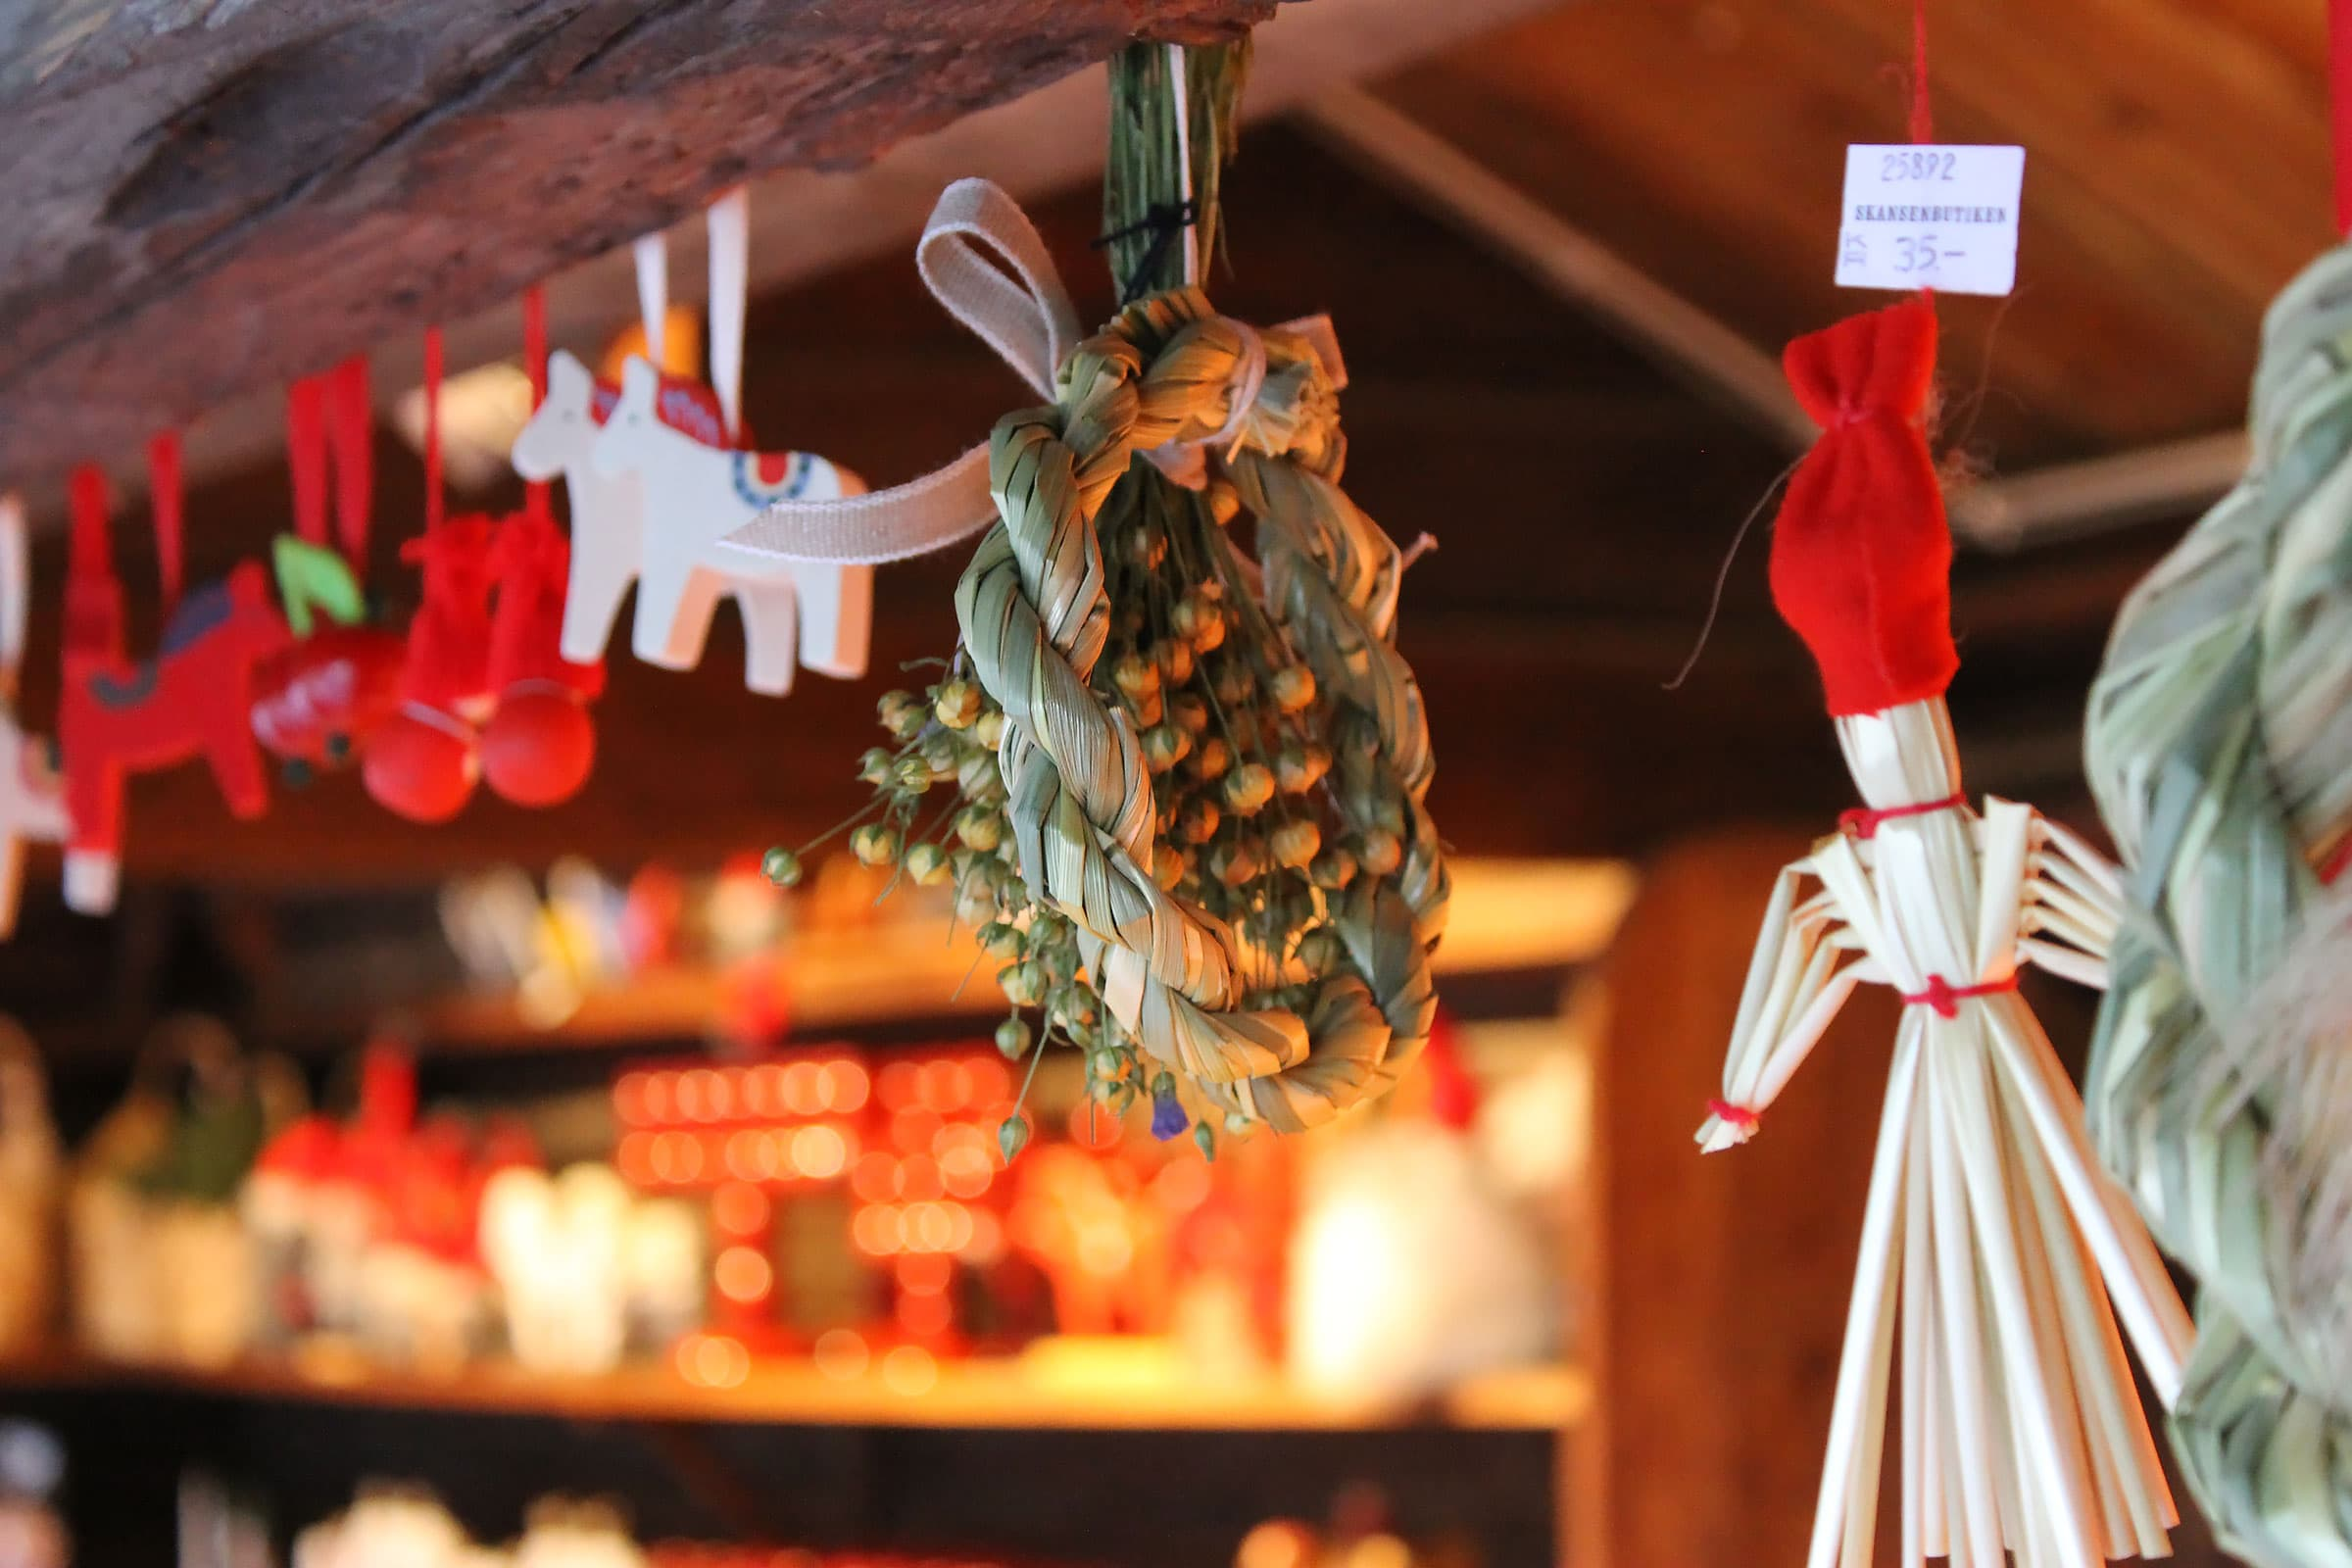 Where to find Stockholm's best Christmas markets